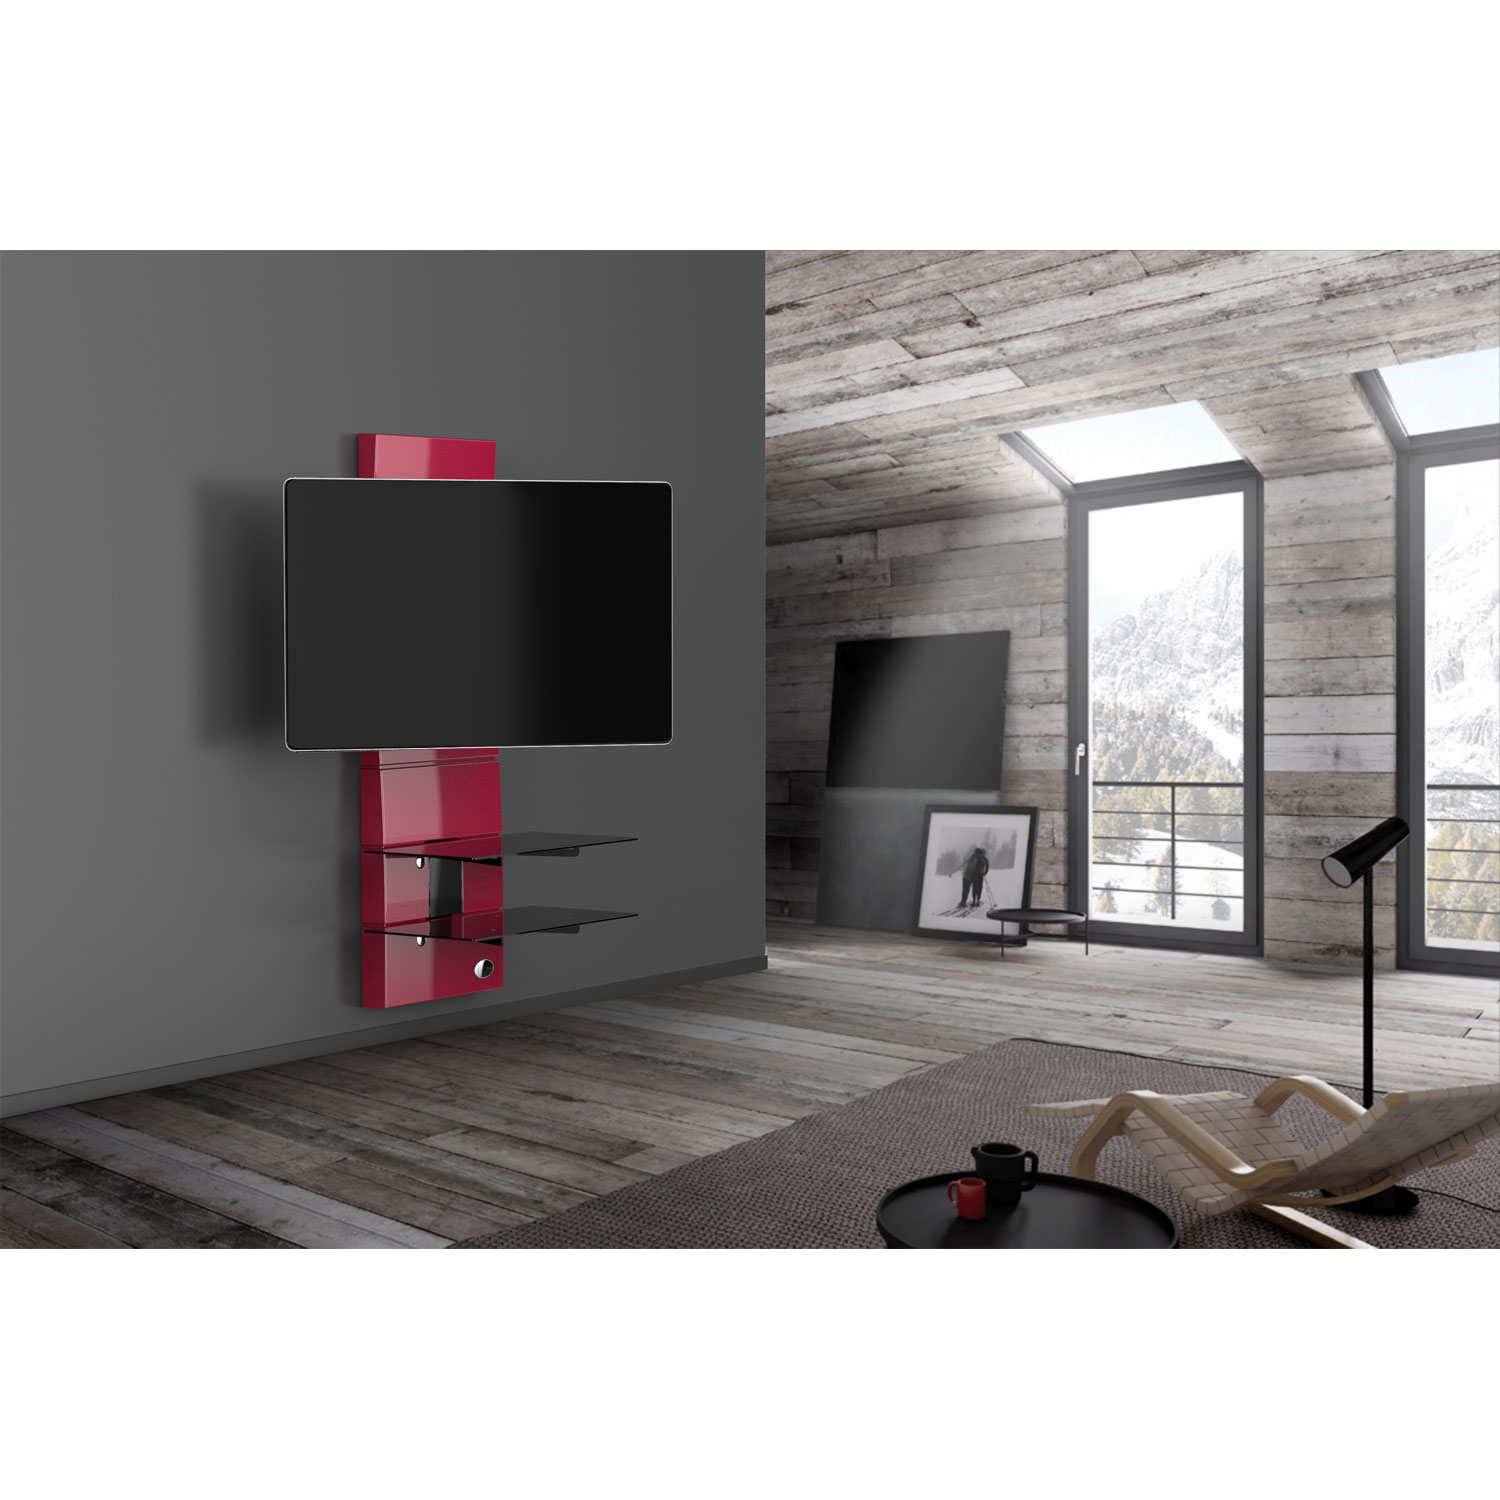 meliconi ghost design 3000 rotation rouge meuble tv meliconi sur ldlc. Black Bedroom Furniture Sets. Home Design Ideas